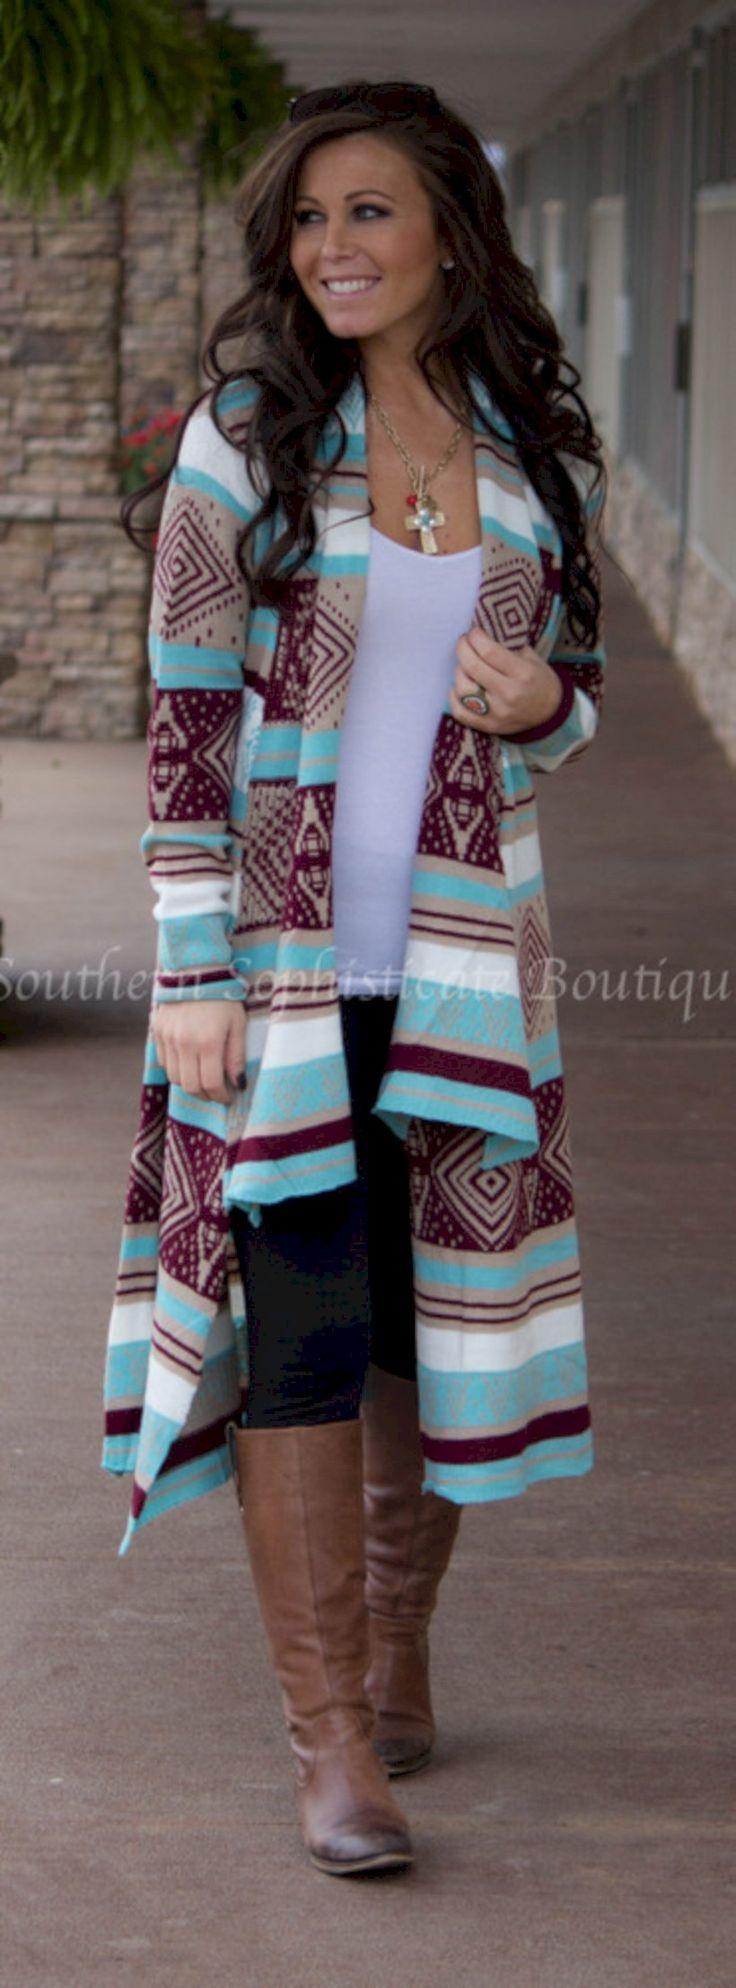 nice 34 Colorful Winter Outfit for Christmas Eve http://attirepin.com/2017/11/16/34-colorful-winter-outfit-christmas-eve/